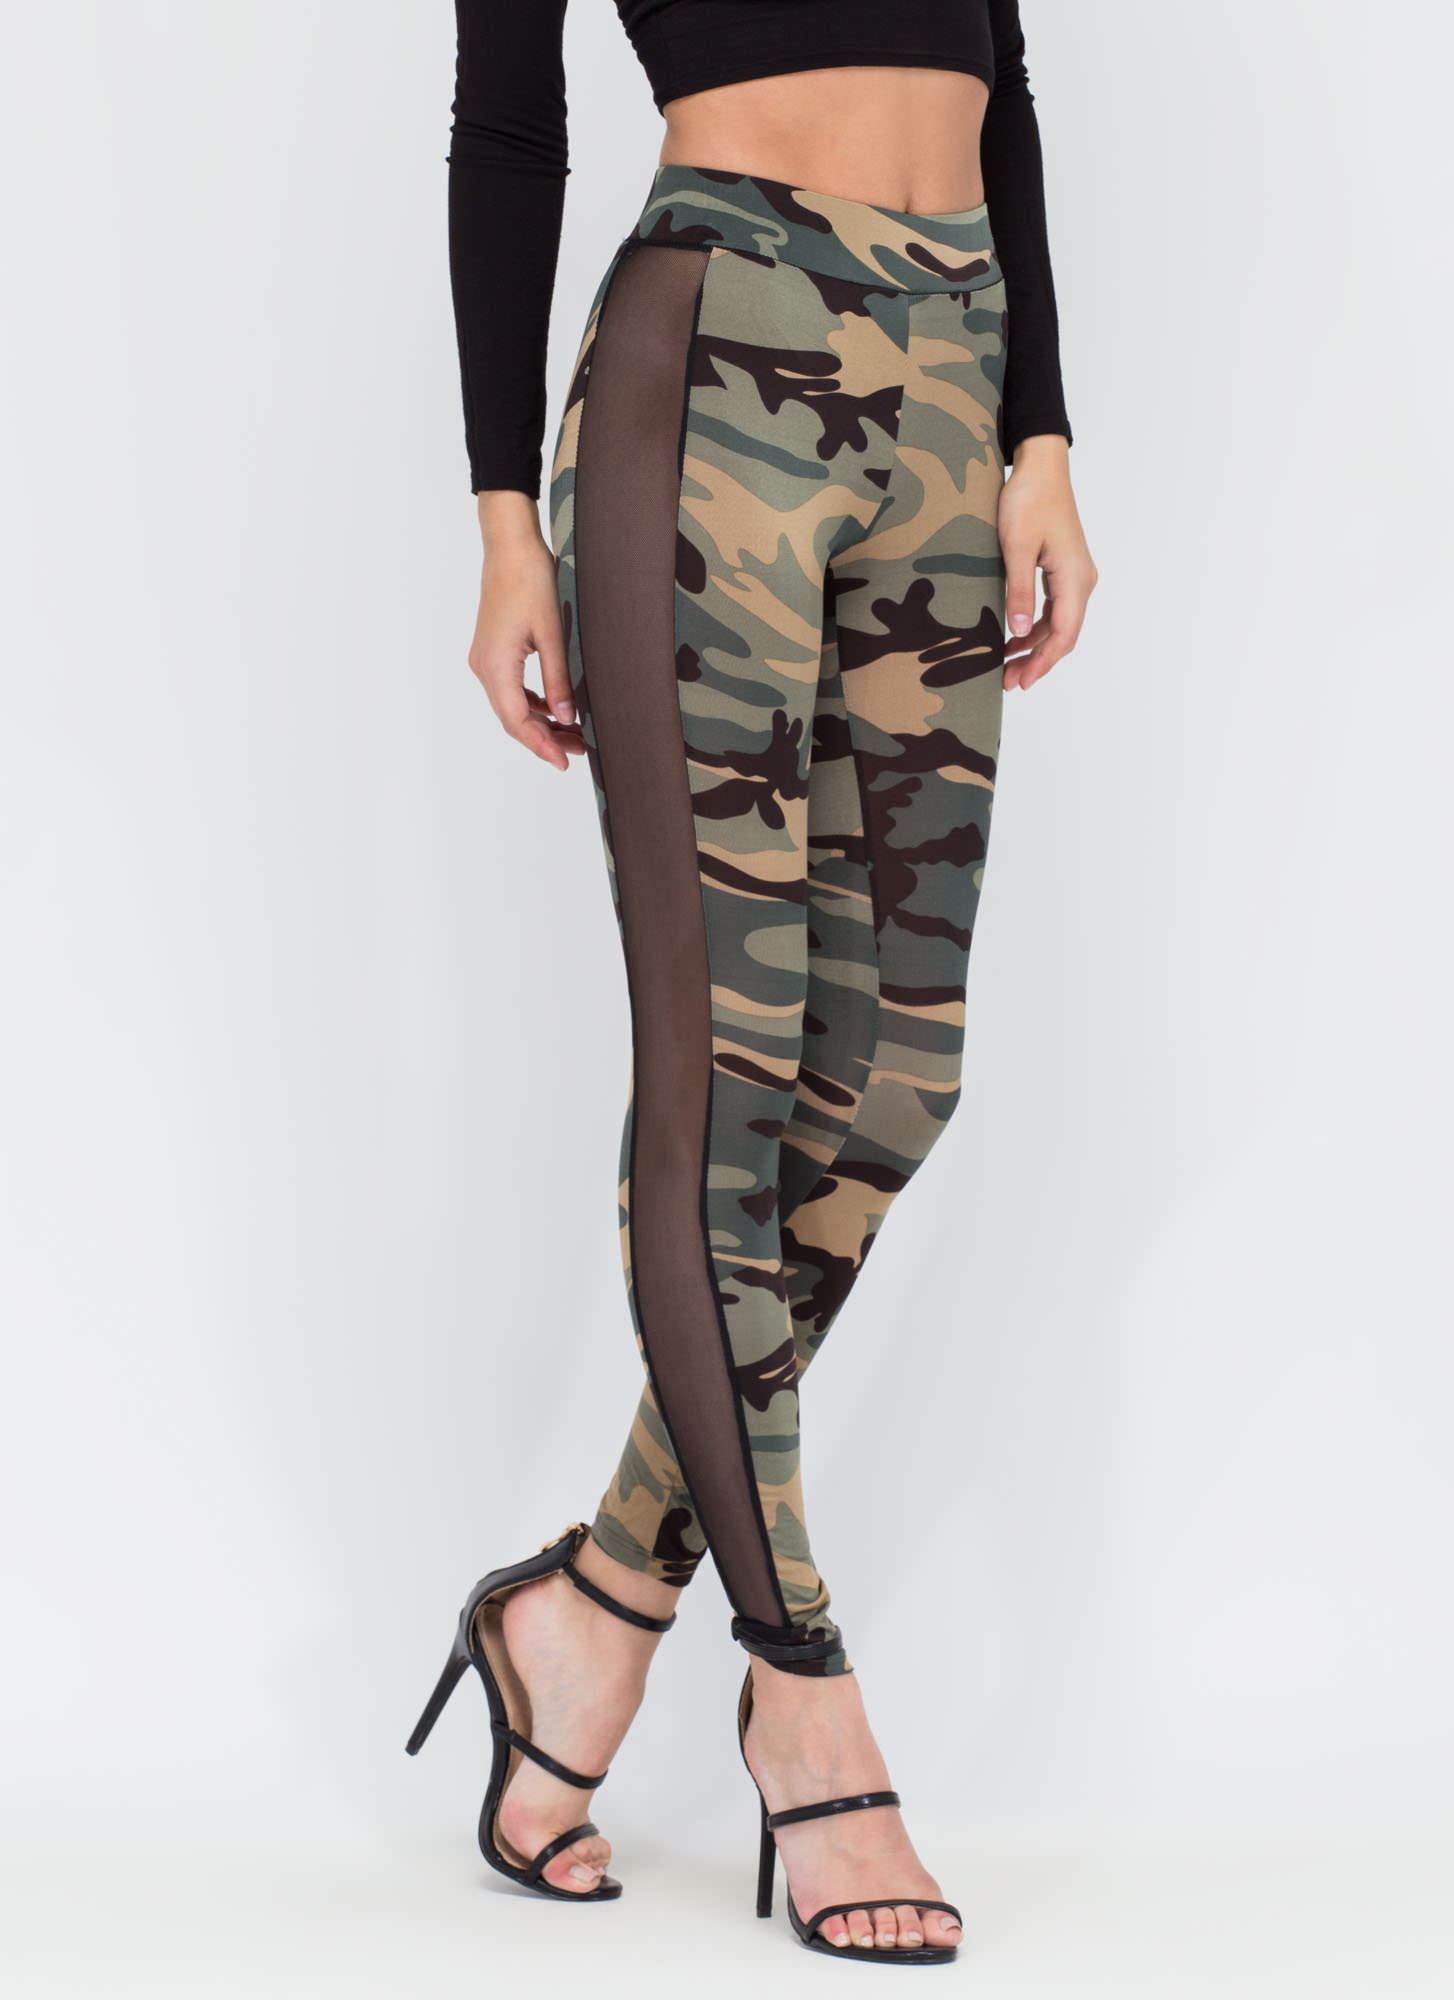 Style Captain Sheer 'N Camo Leggings CAMO